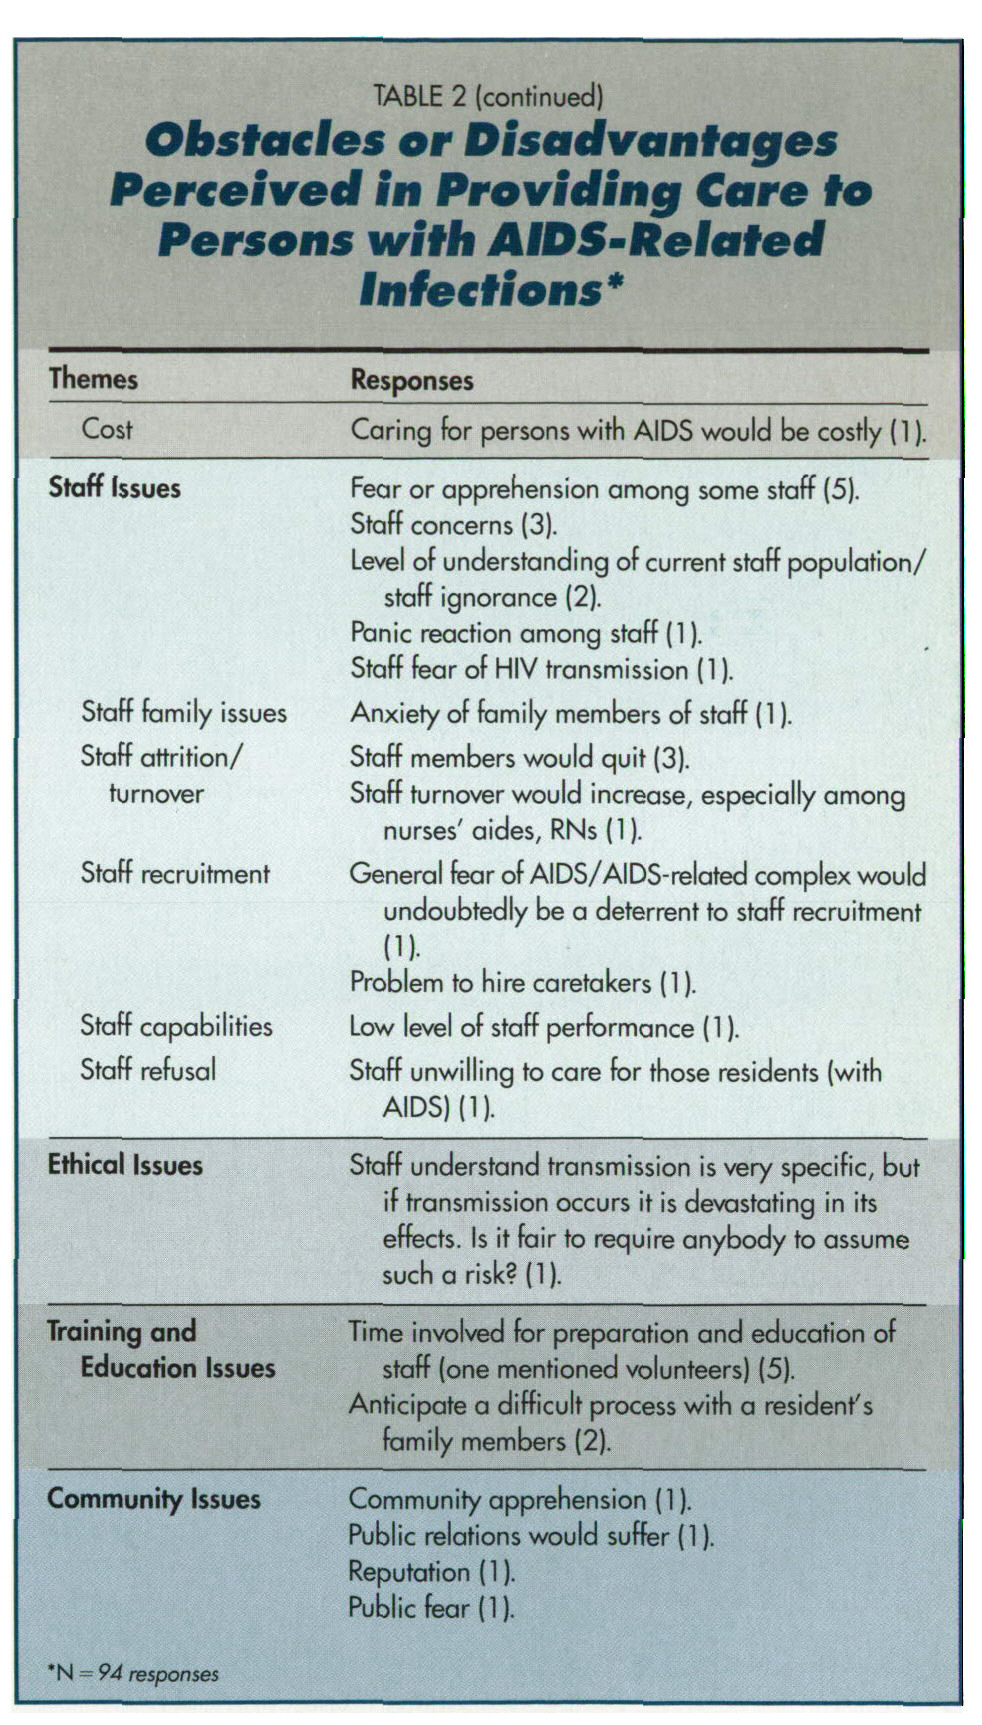 TABLE 2Obstacles or Disadvantages Perceived In Providing Care to Persons with AIDS-Related Indections*